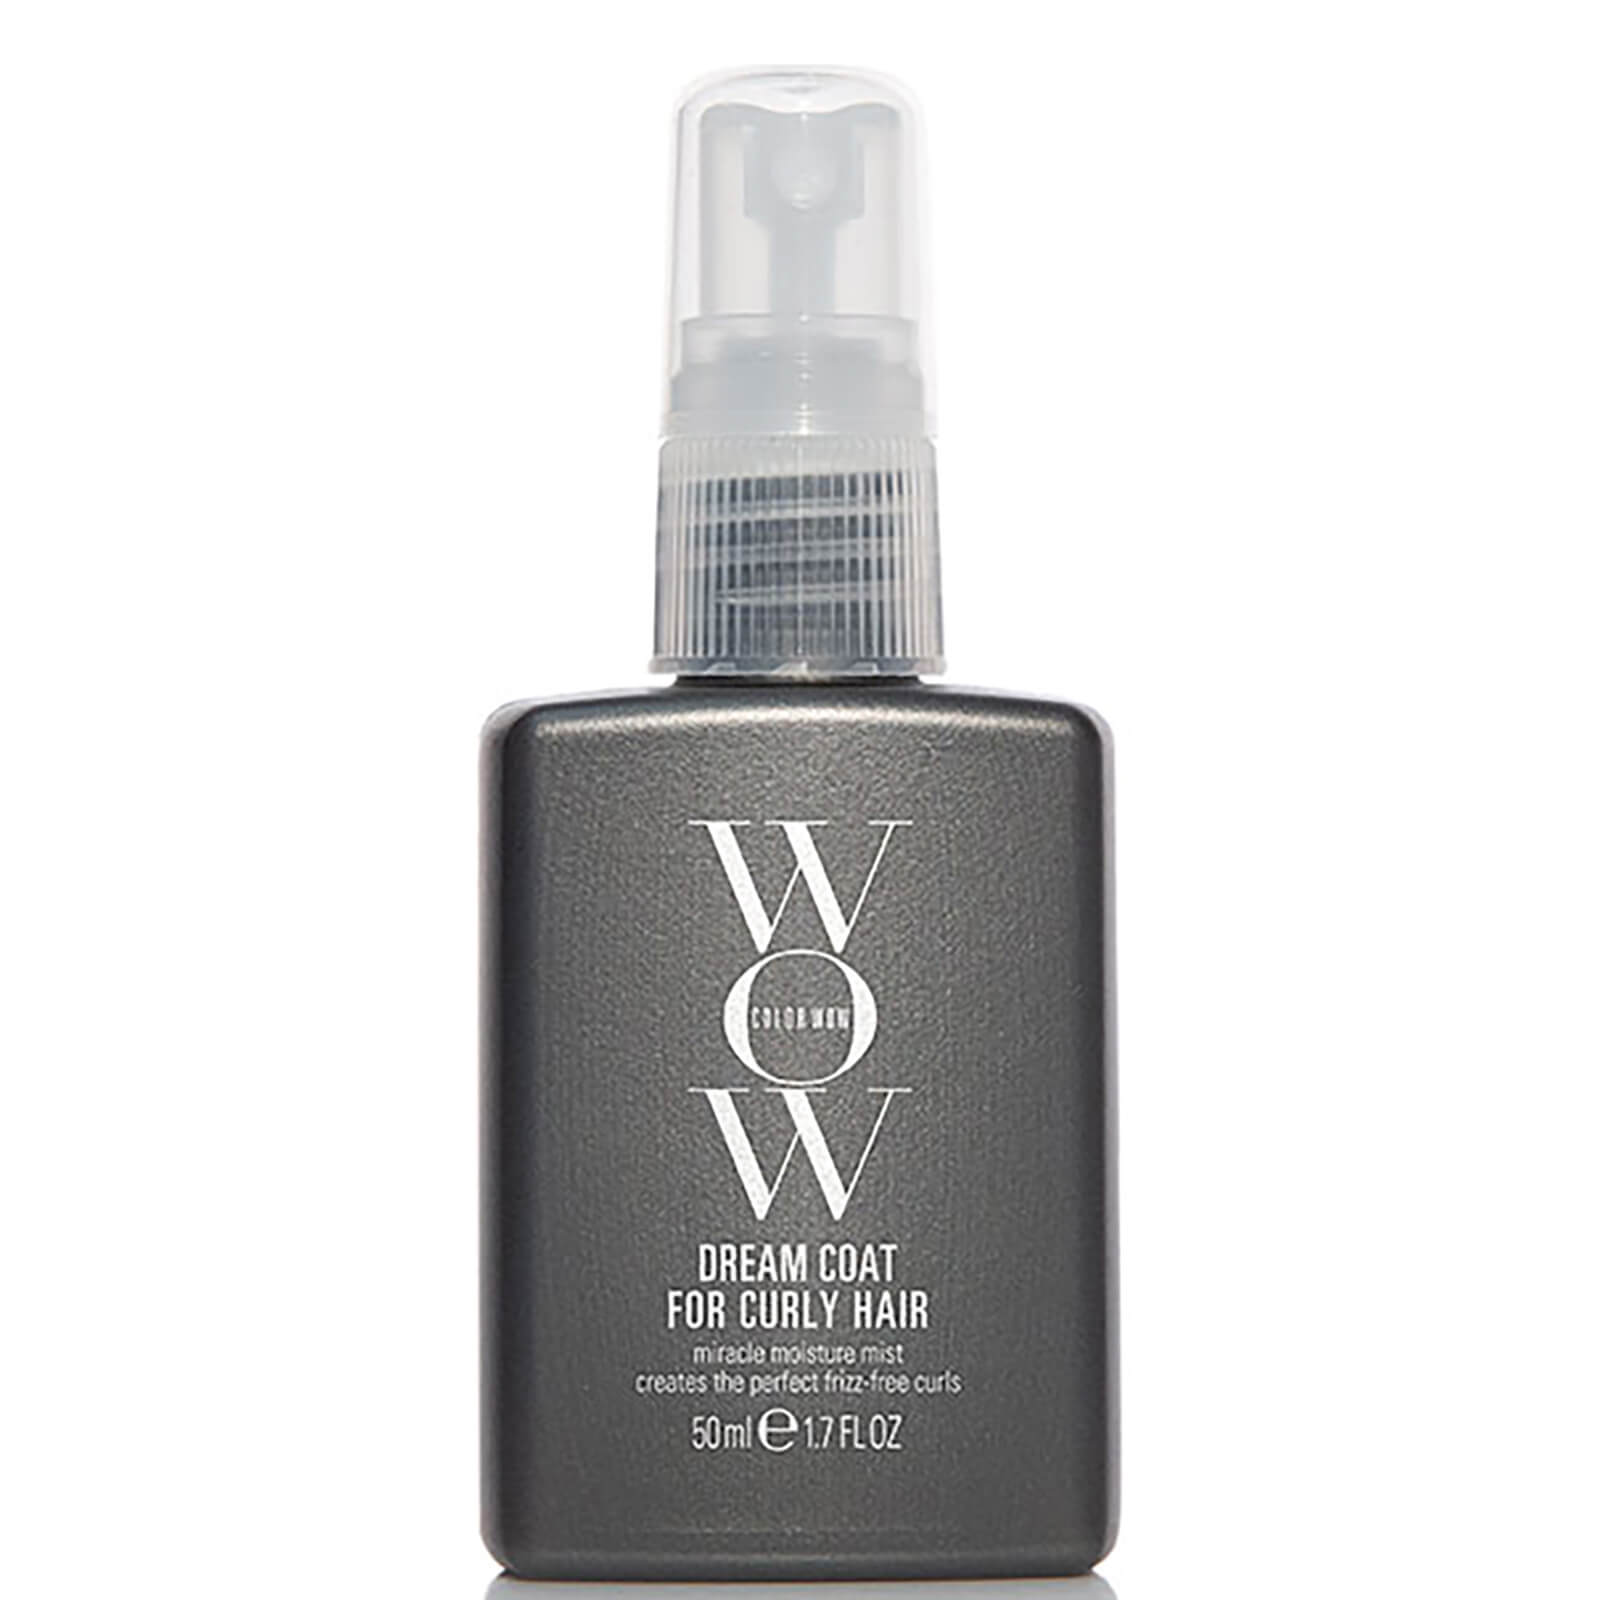 Color Wow Dream Coat for Curly Hair Travel Size 50ml